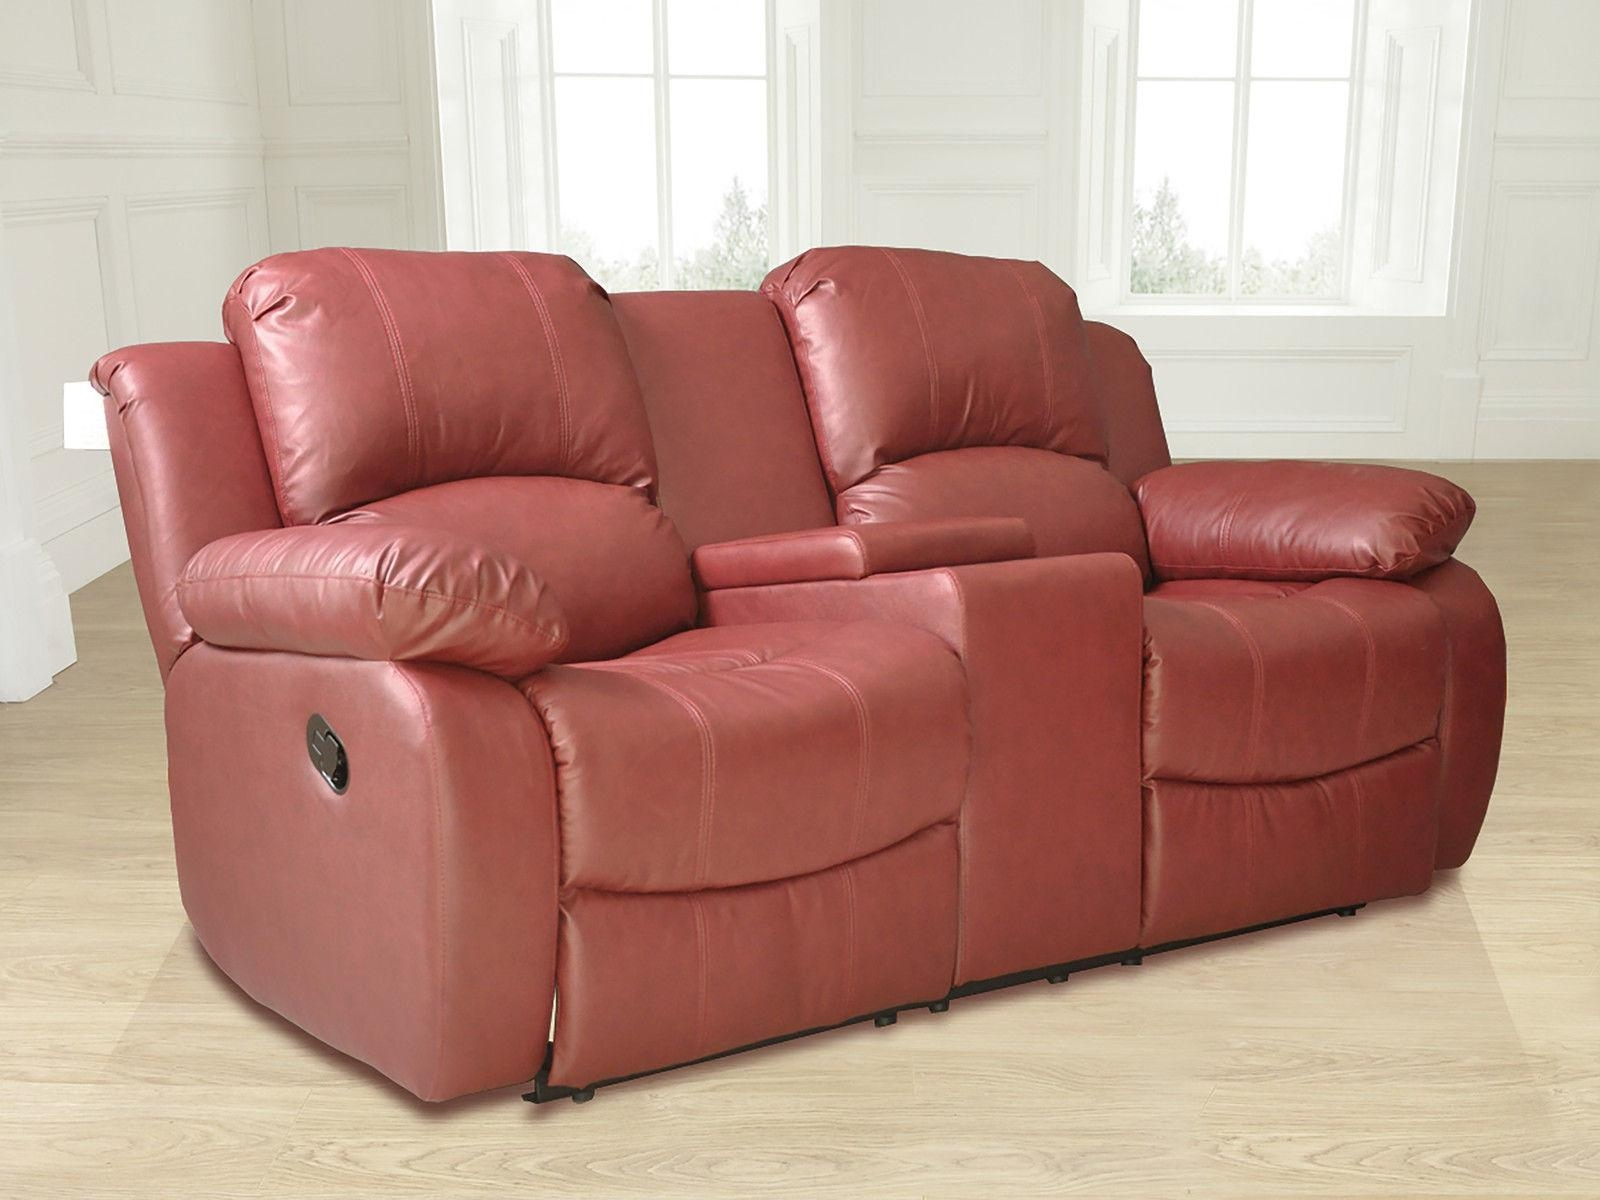 Living Room Sofa Cinema Seater Unusual S L1600 We Sell Any Sofas In Unusual Sofas (Image 2 of 20)